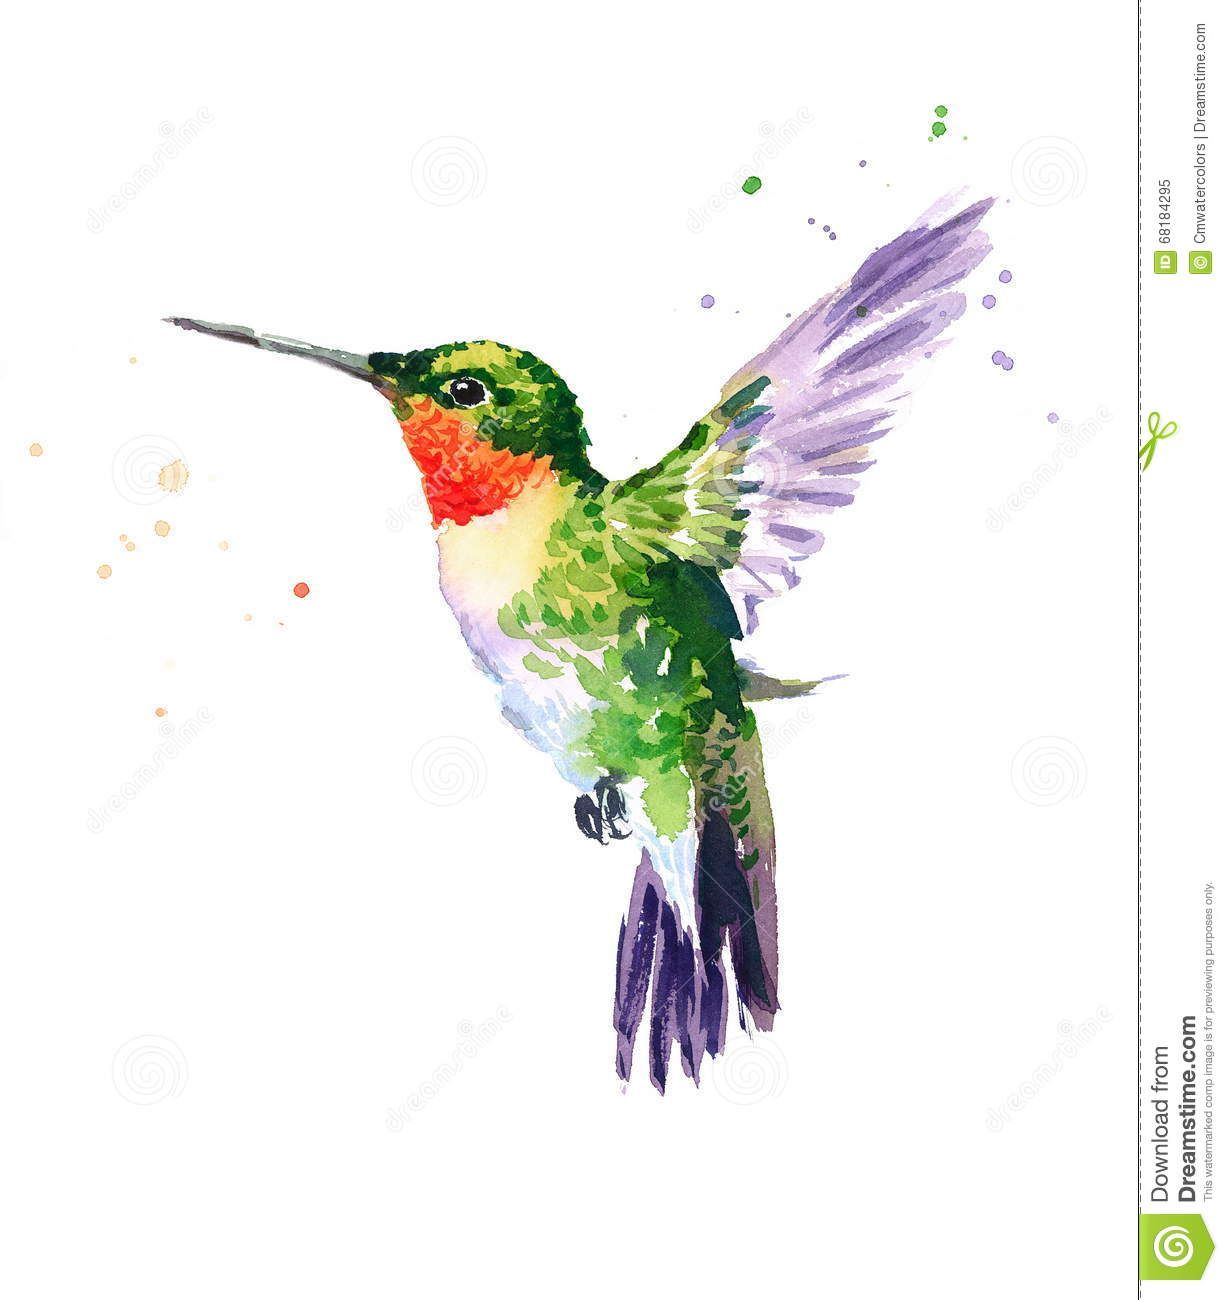 1228x1300 Hummingbird Flying Watercolor Bird Illustration Hand Drawn